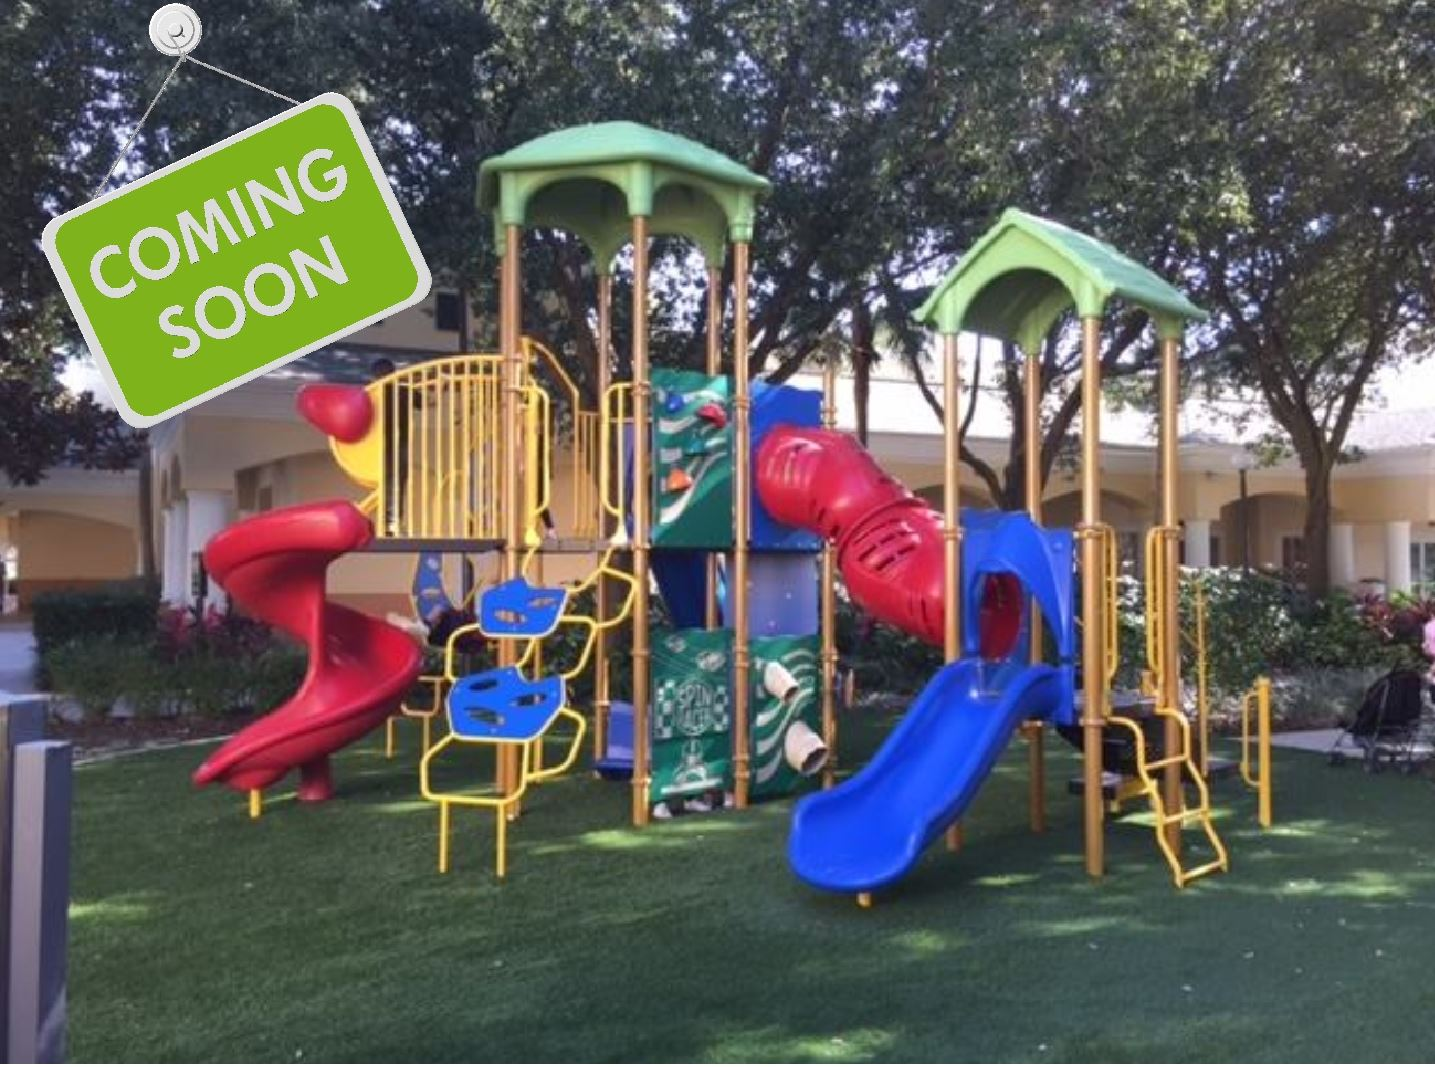 Coming Soon Playground Pic